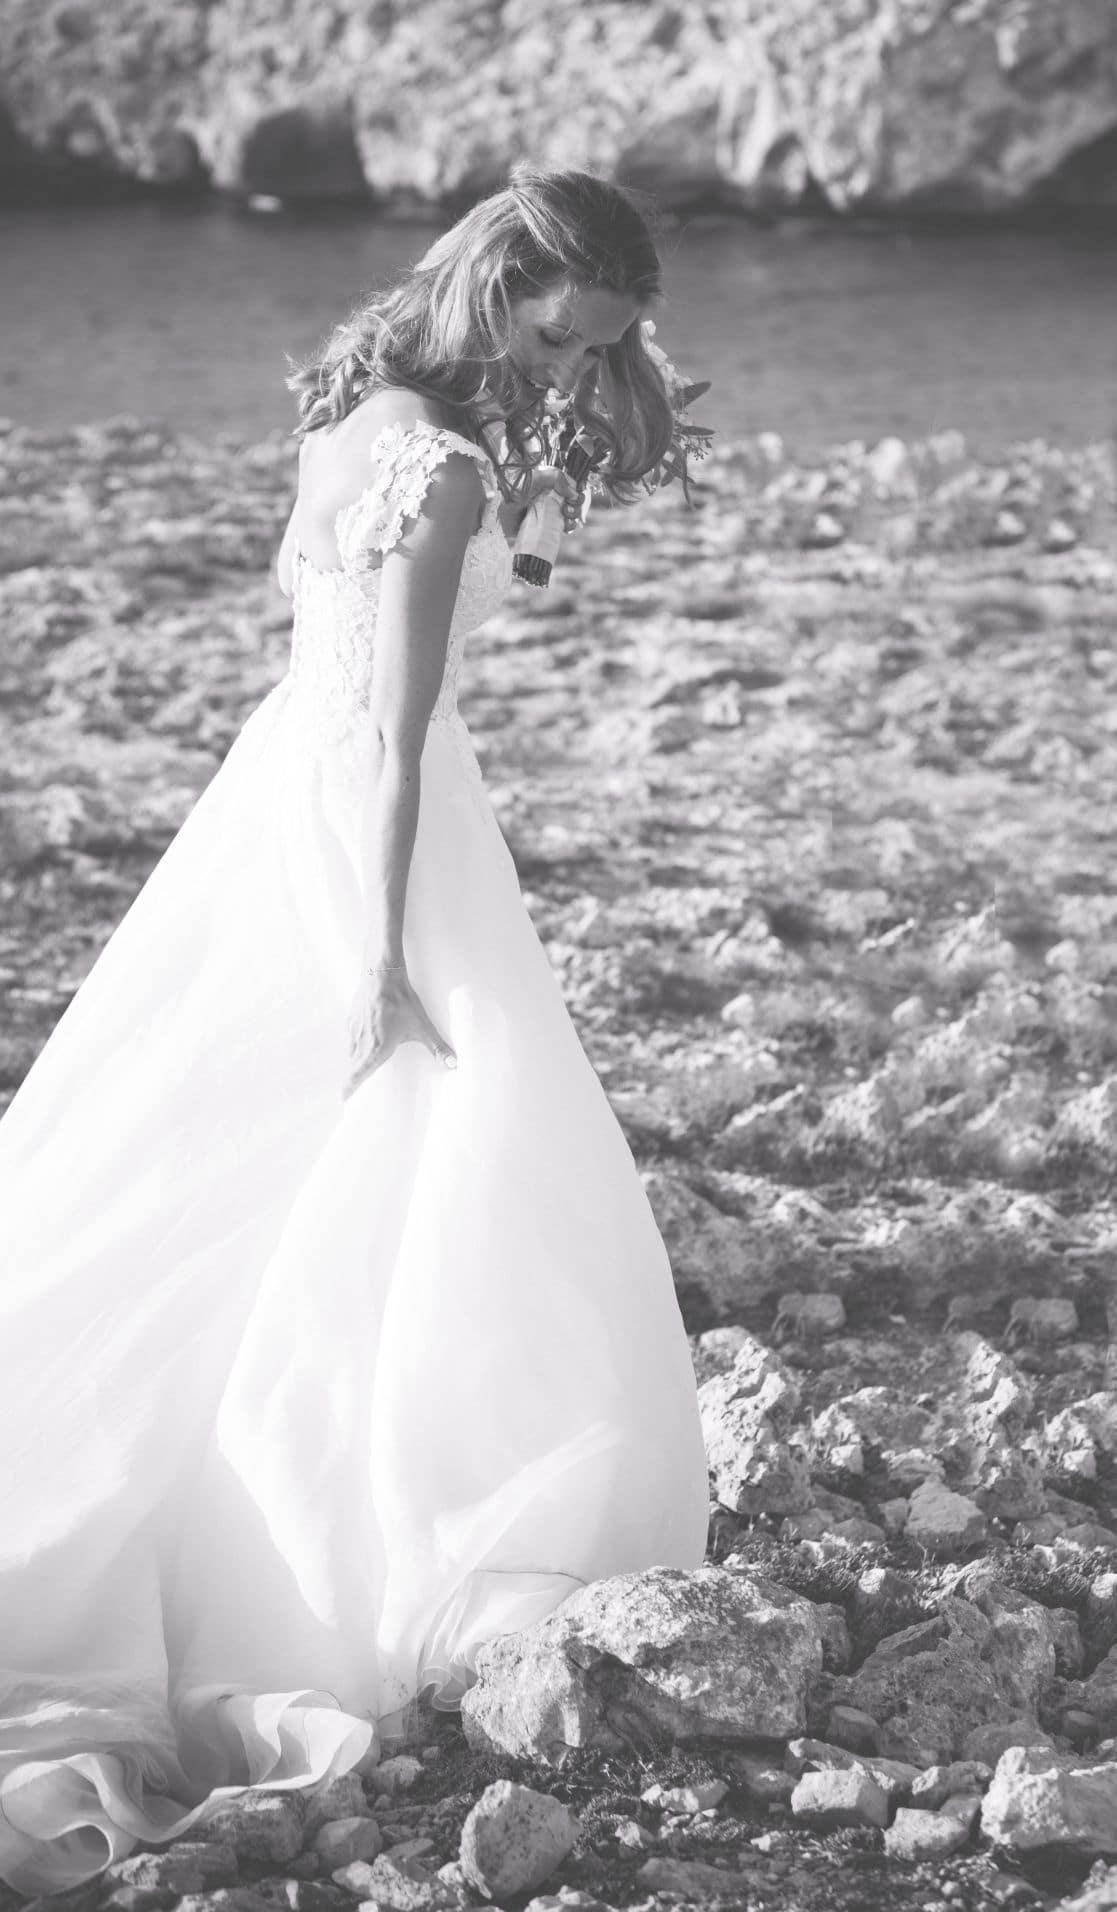 Million Memories_S&J_Hochzeitsfotograf_Mallorca_Spain_Wedding_Spanien Hochzeit_Balearen_Balearic islands_143